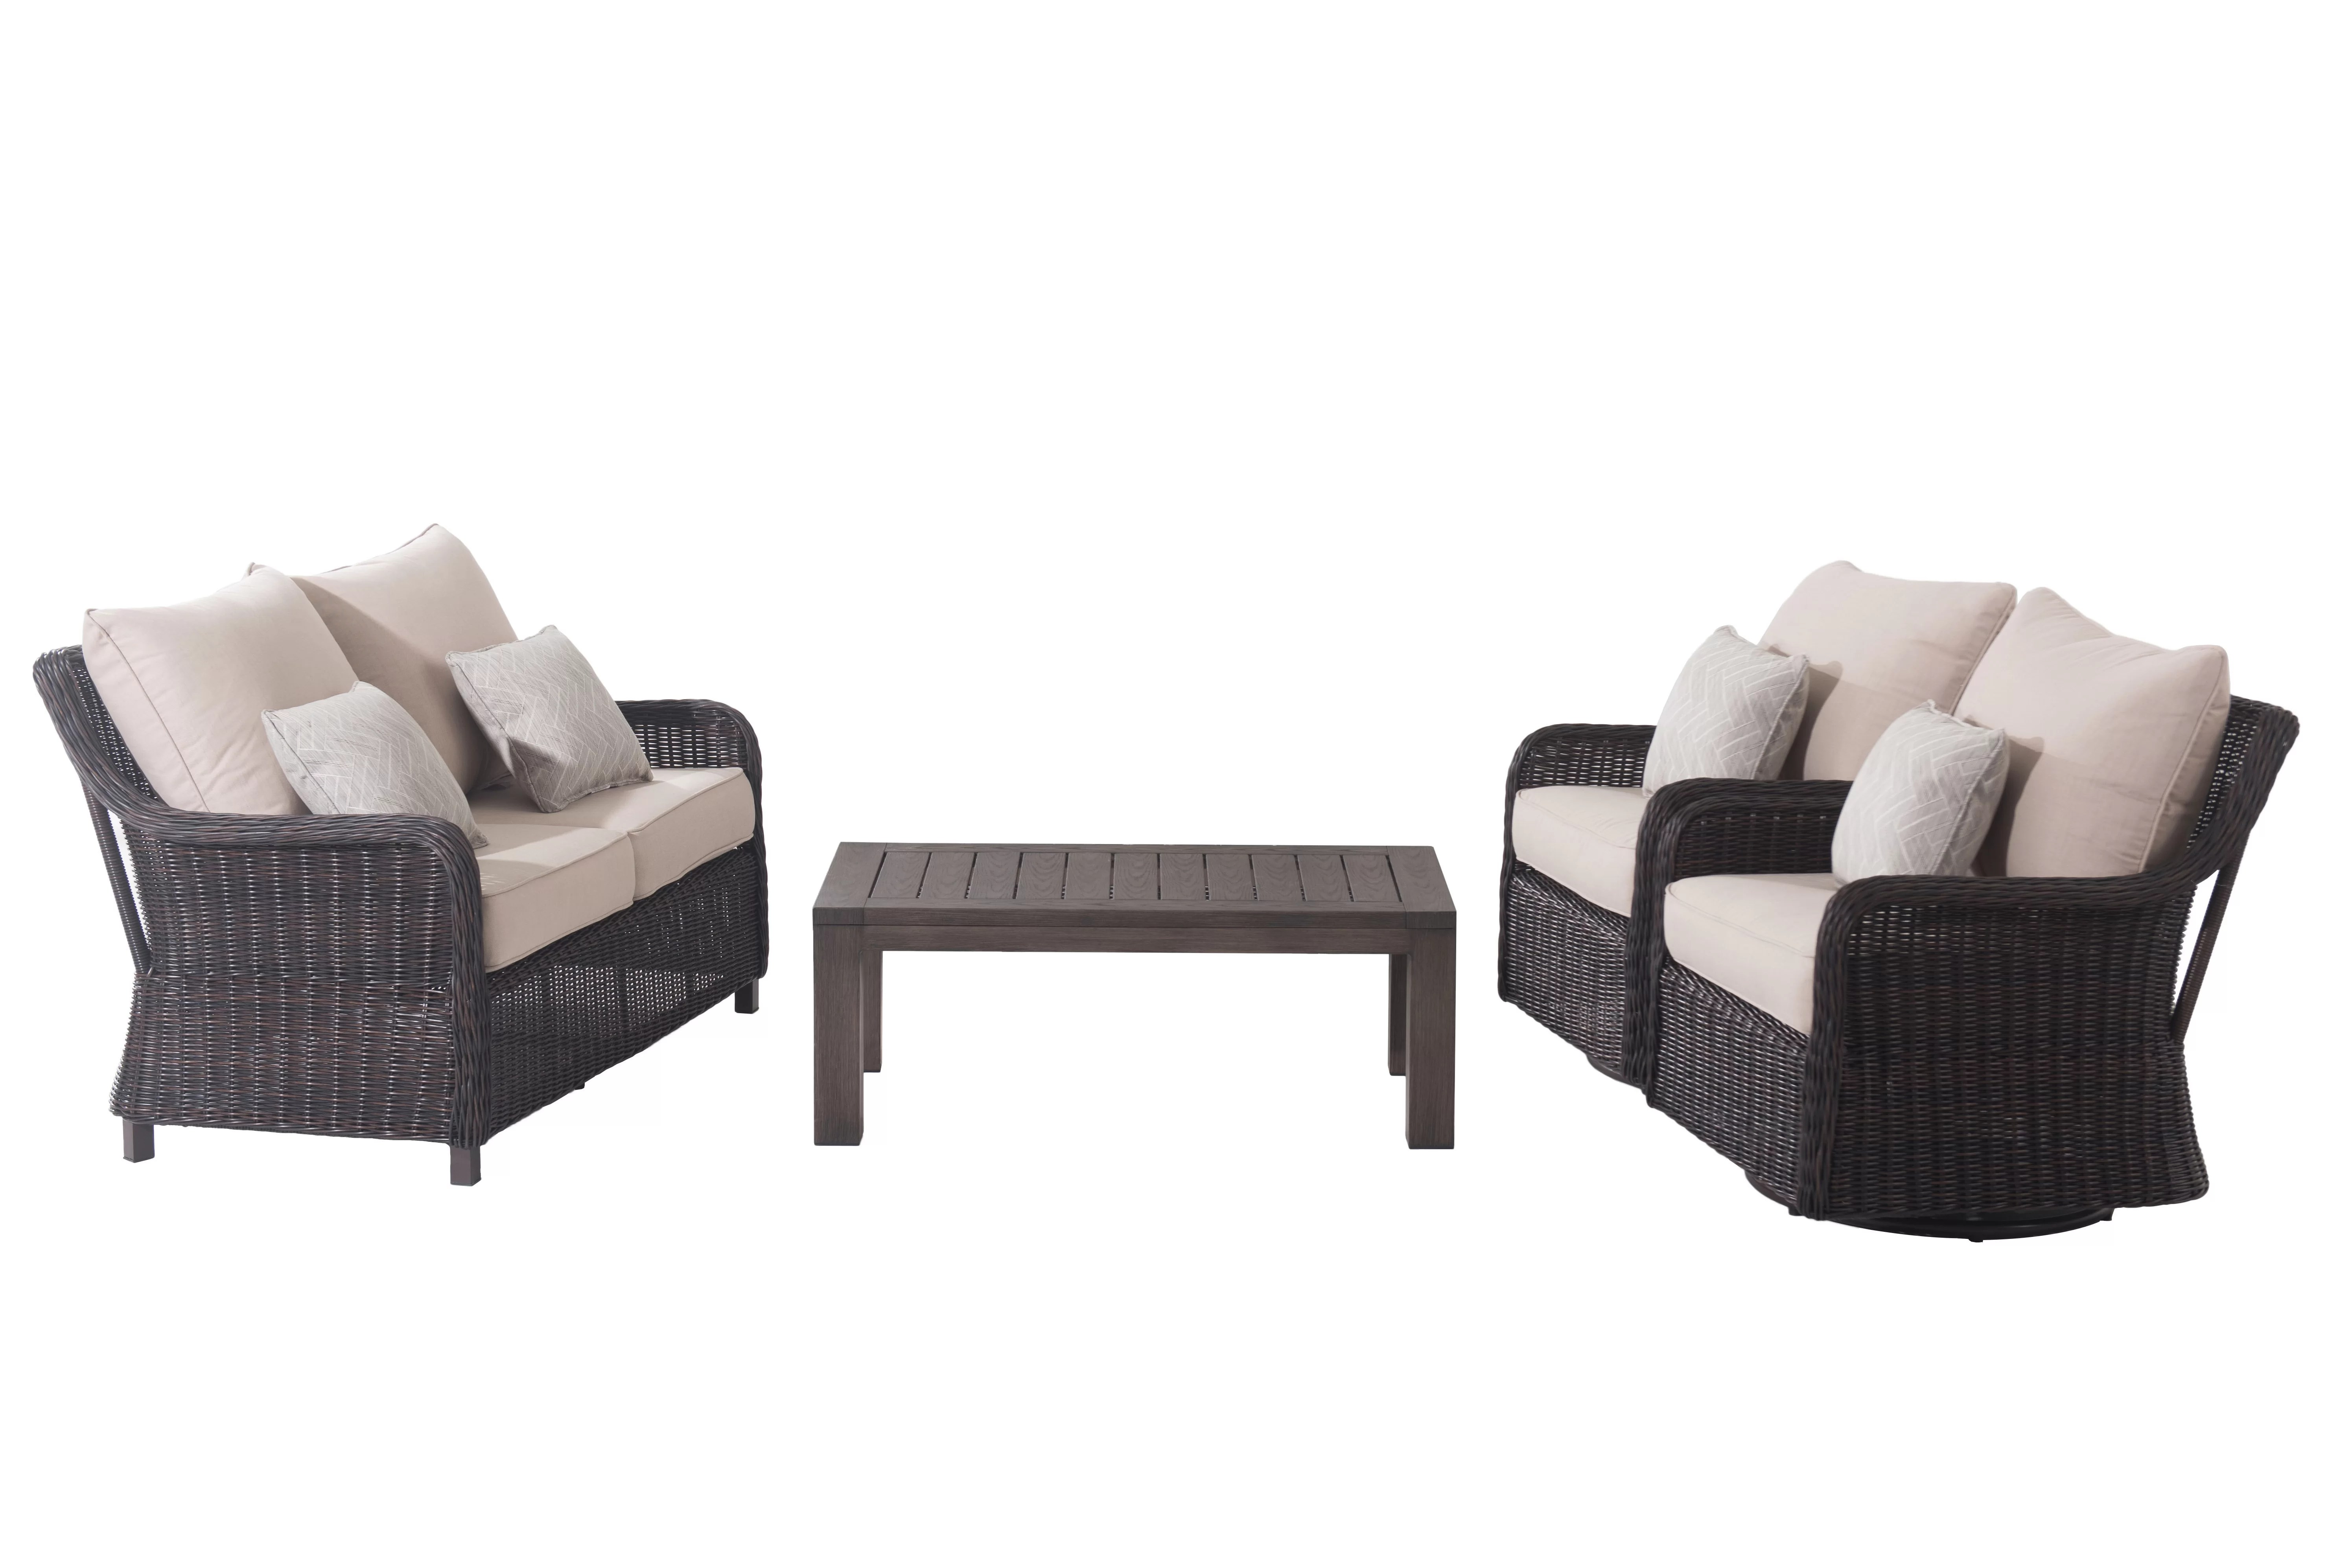 Baptist 6 Piece Rattan Sofa Set With Cushions Macri 4 Piece Sofa Seating Group With Cushions